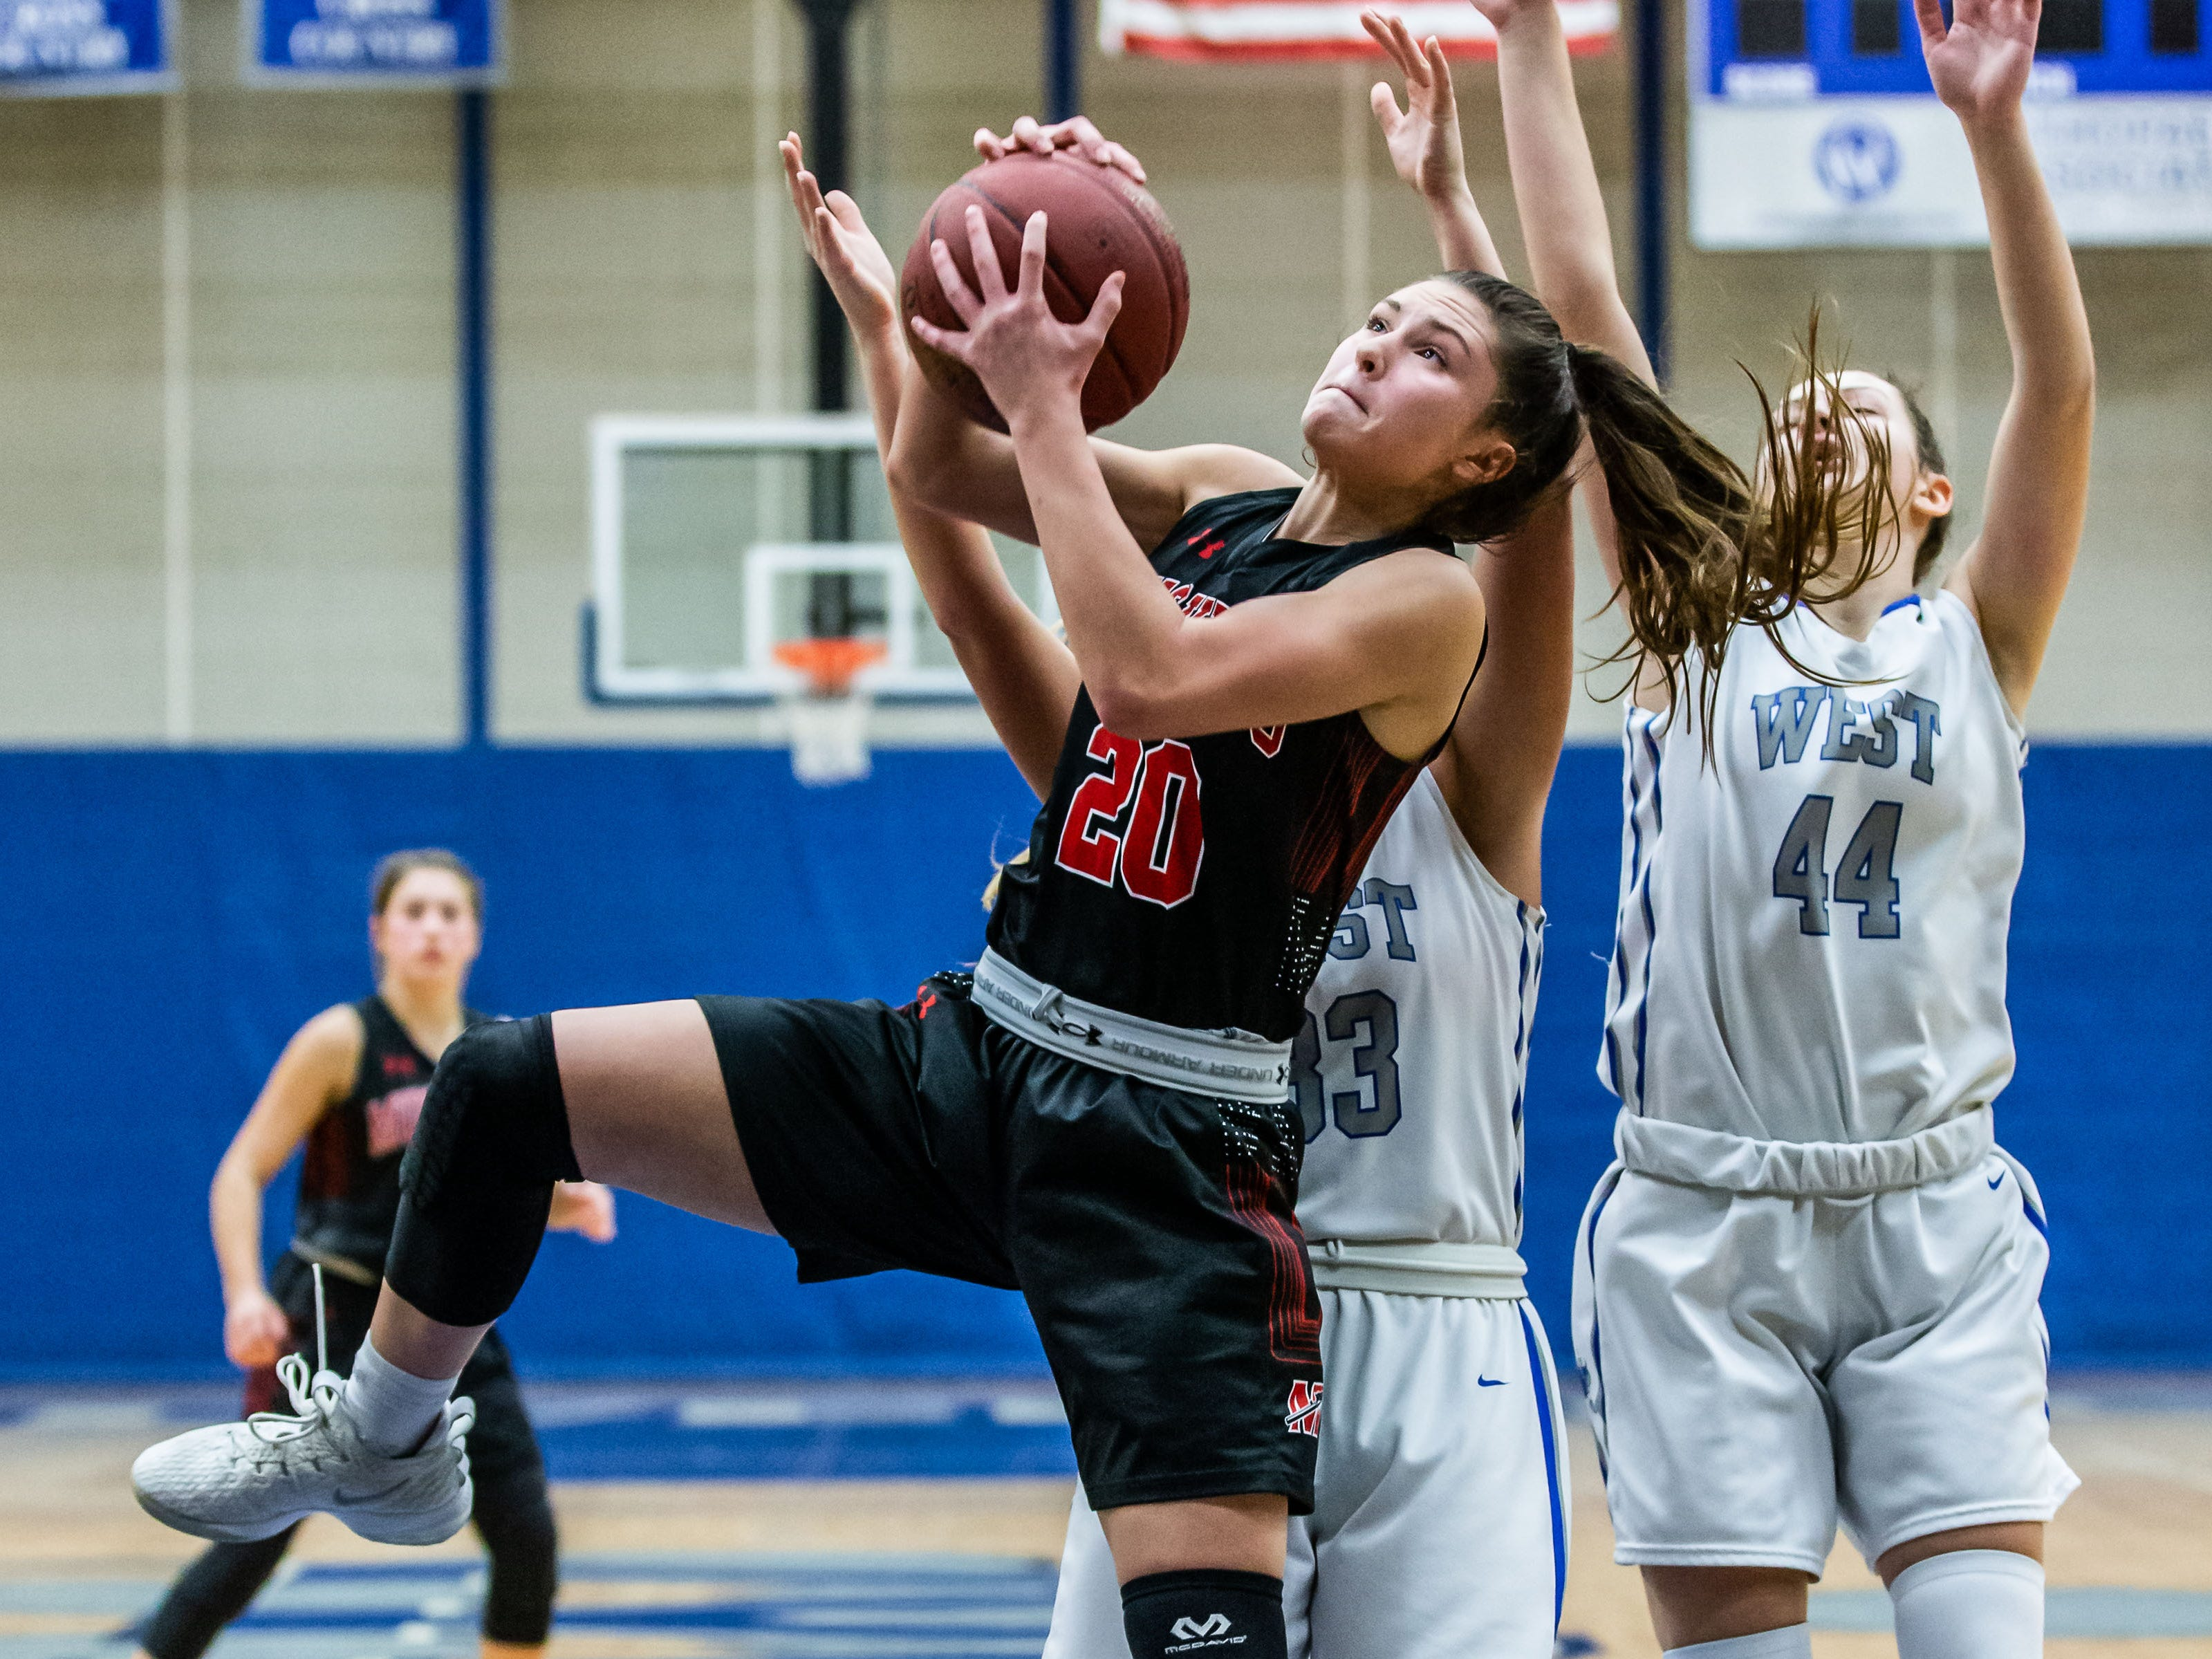 Muskego's Savanah Balcerak (20) pulls down a rebound during the game at Waukesha West on Friday, Jan. 25, 2019.